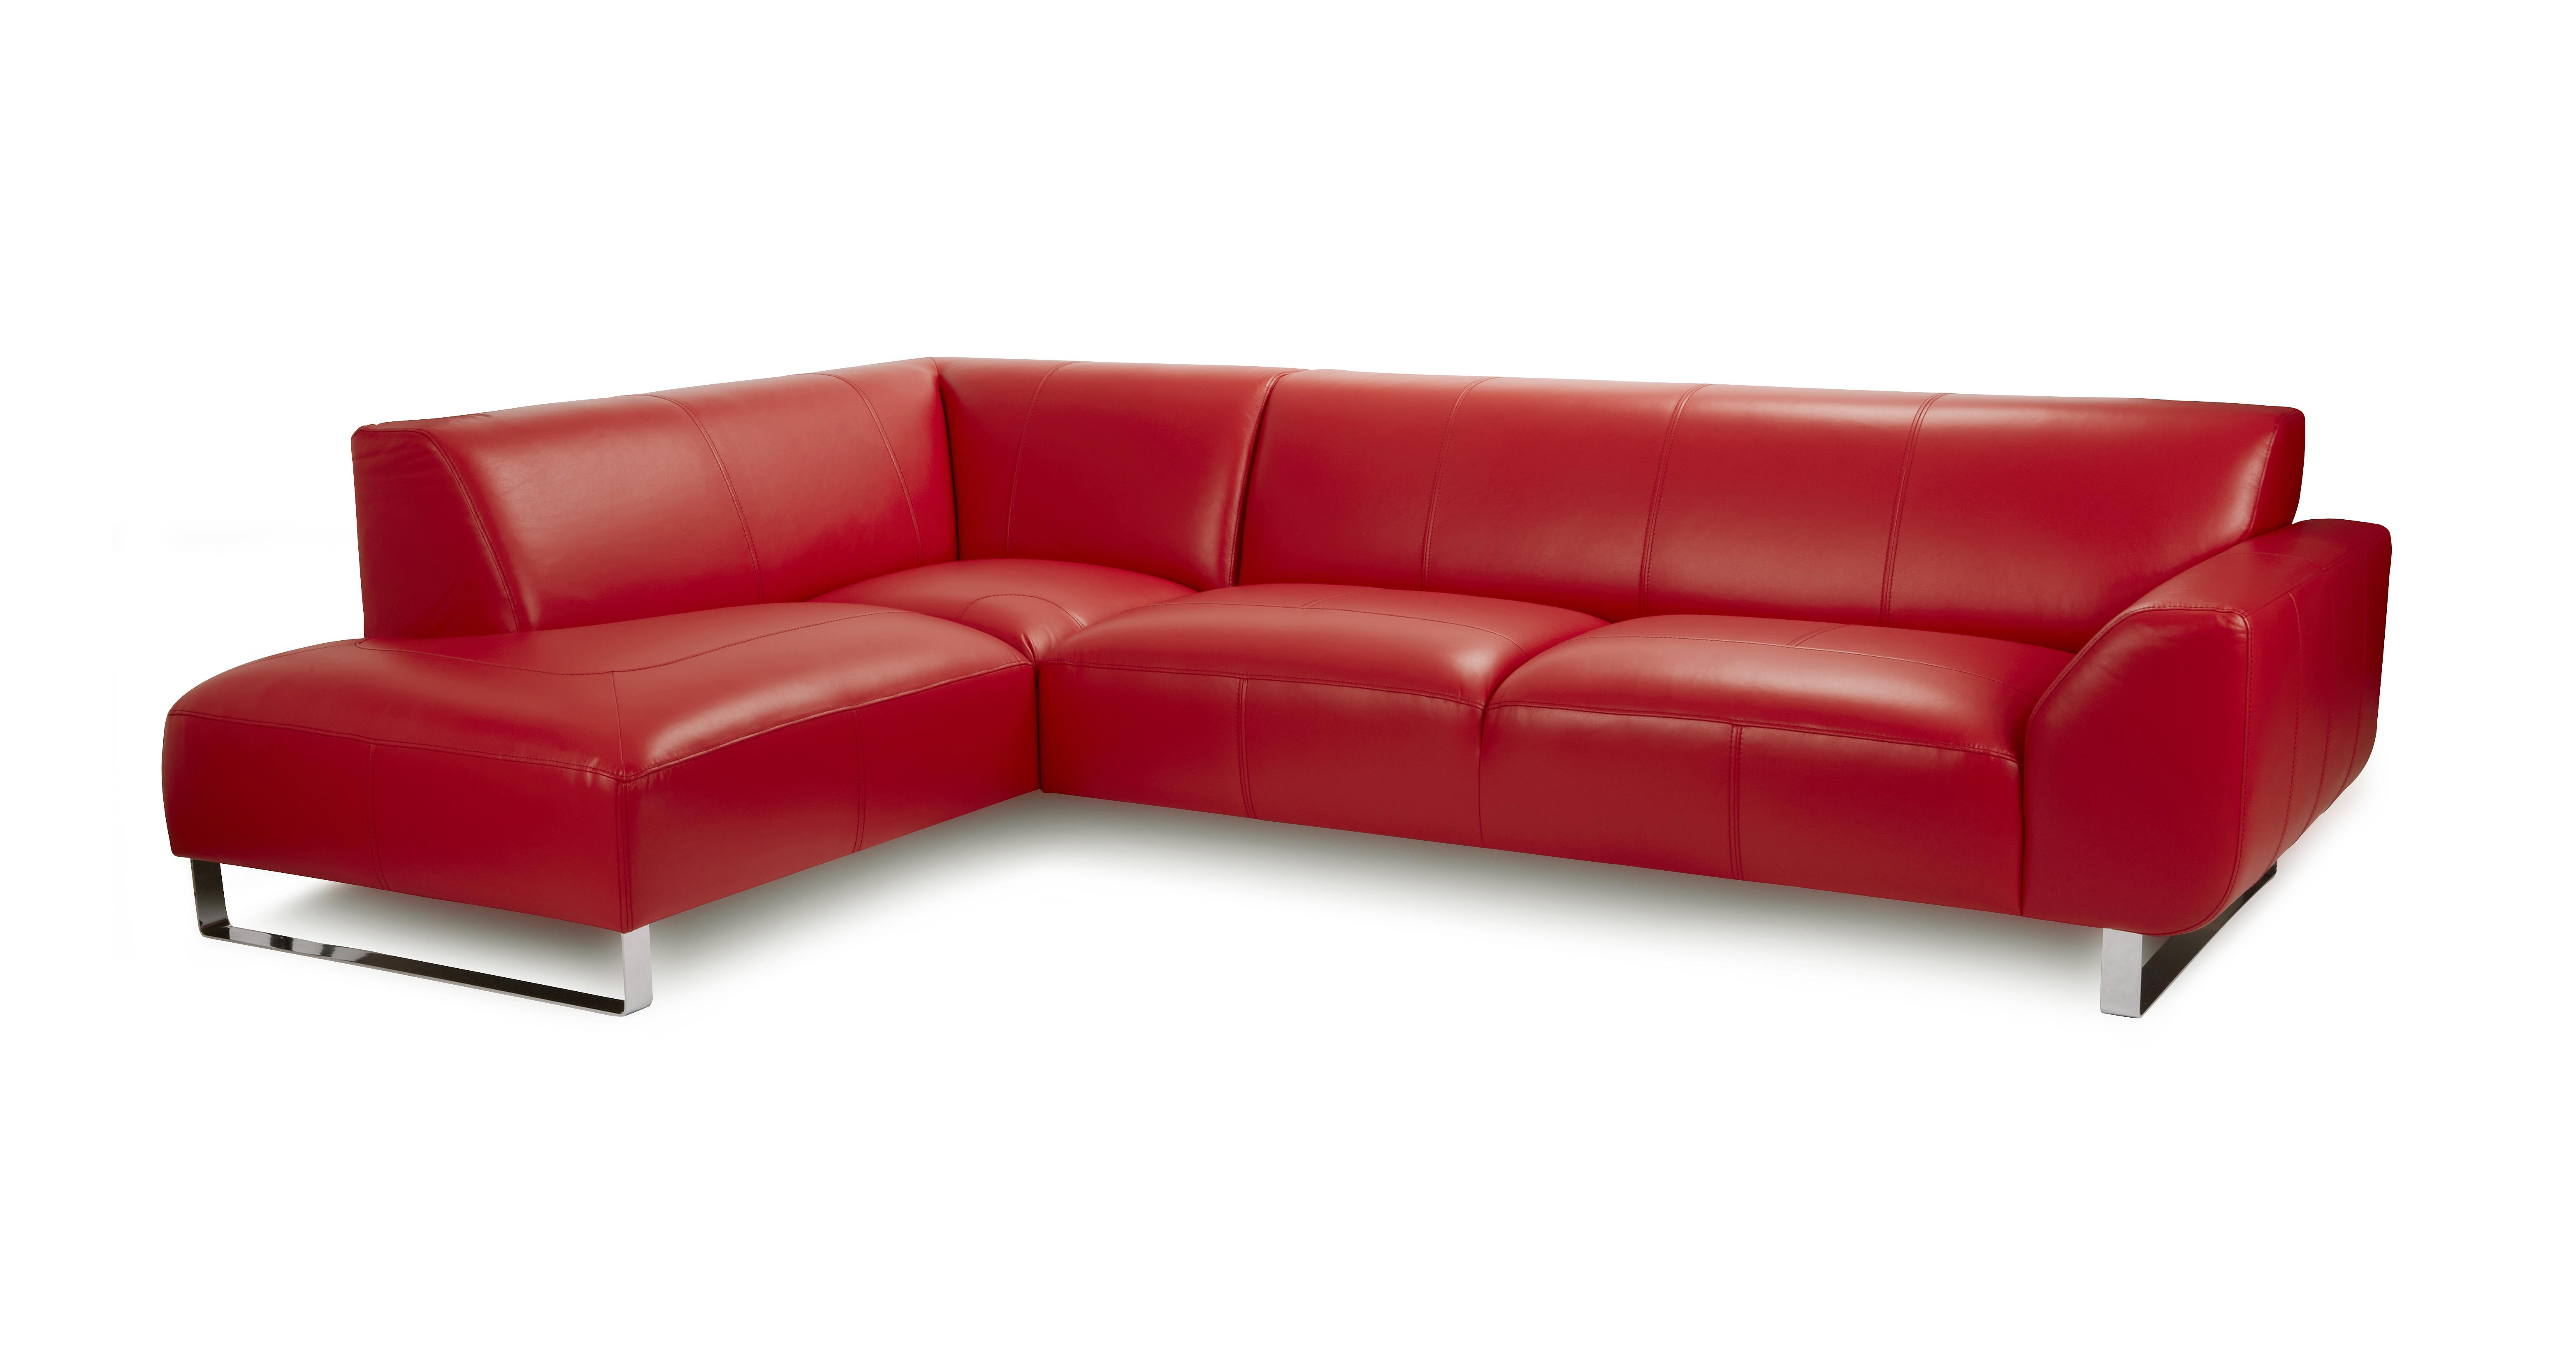 dfs red leather corner sofa bed removal rotherham cheap sofas uk brokeasshome